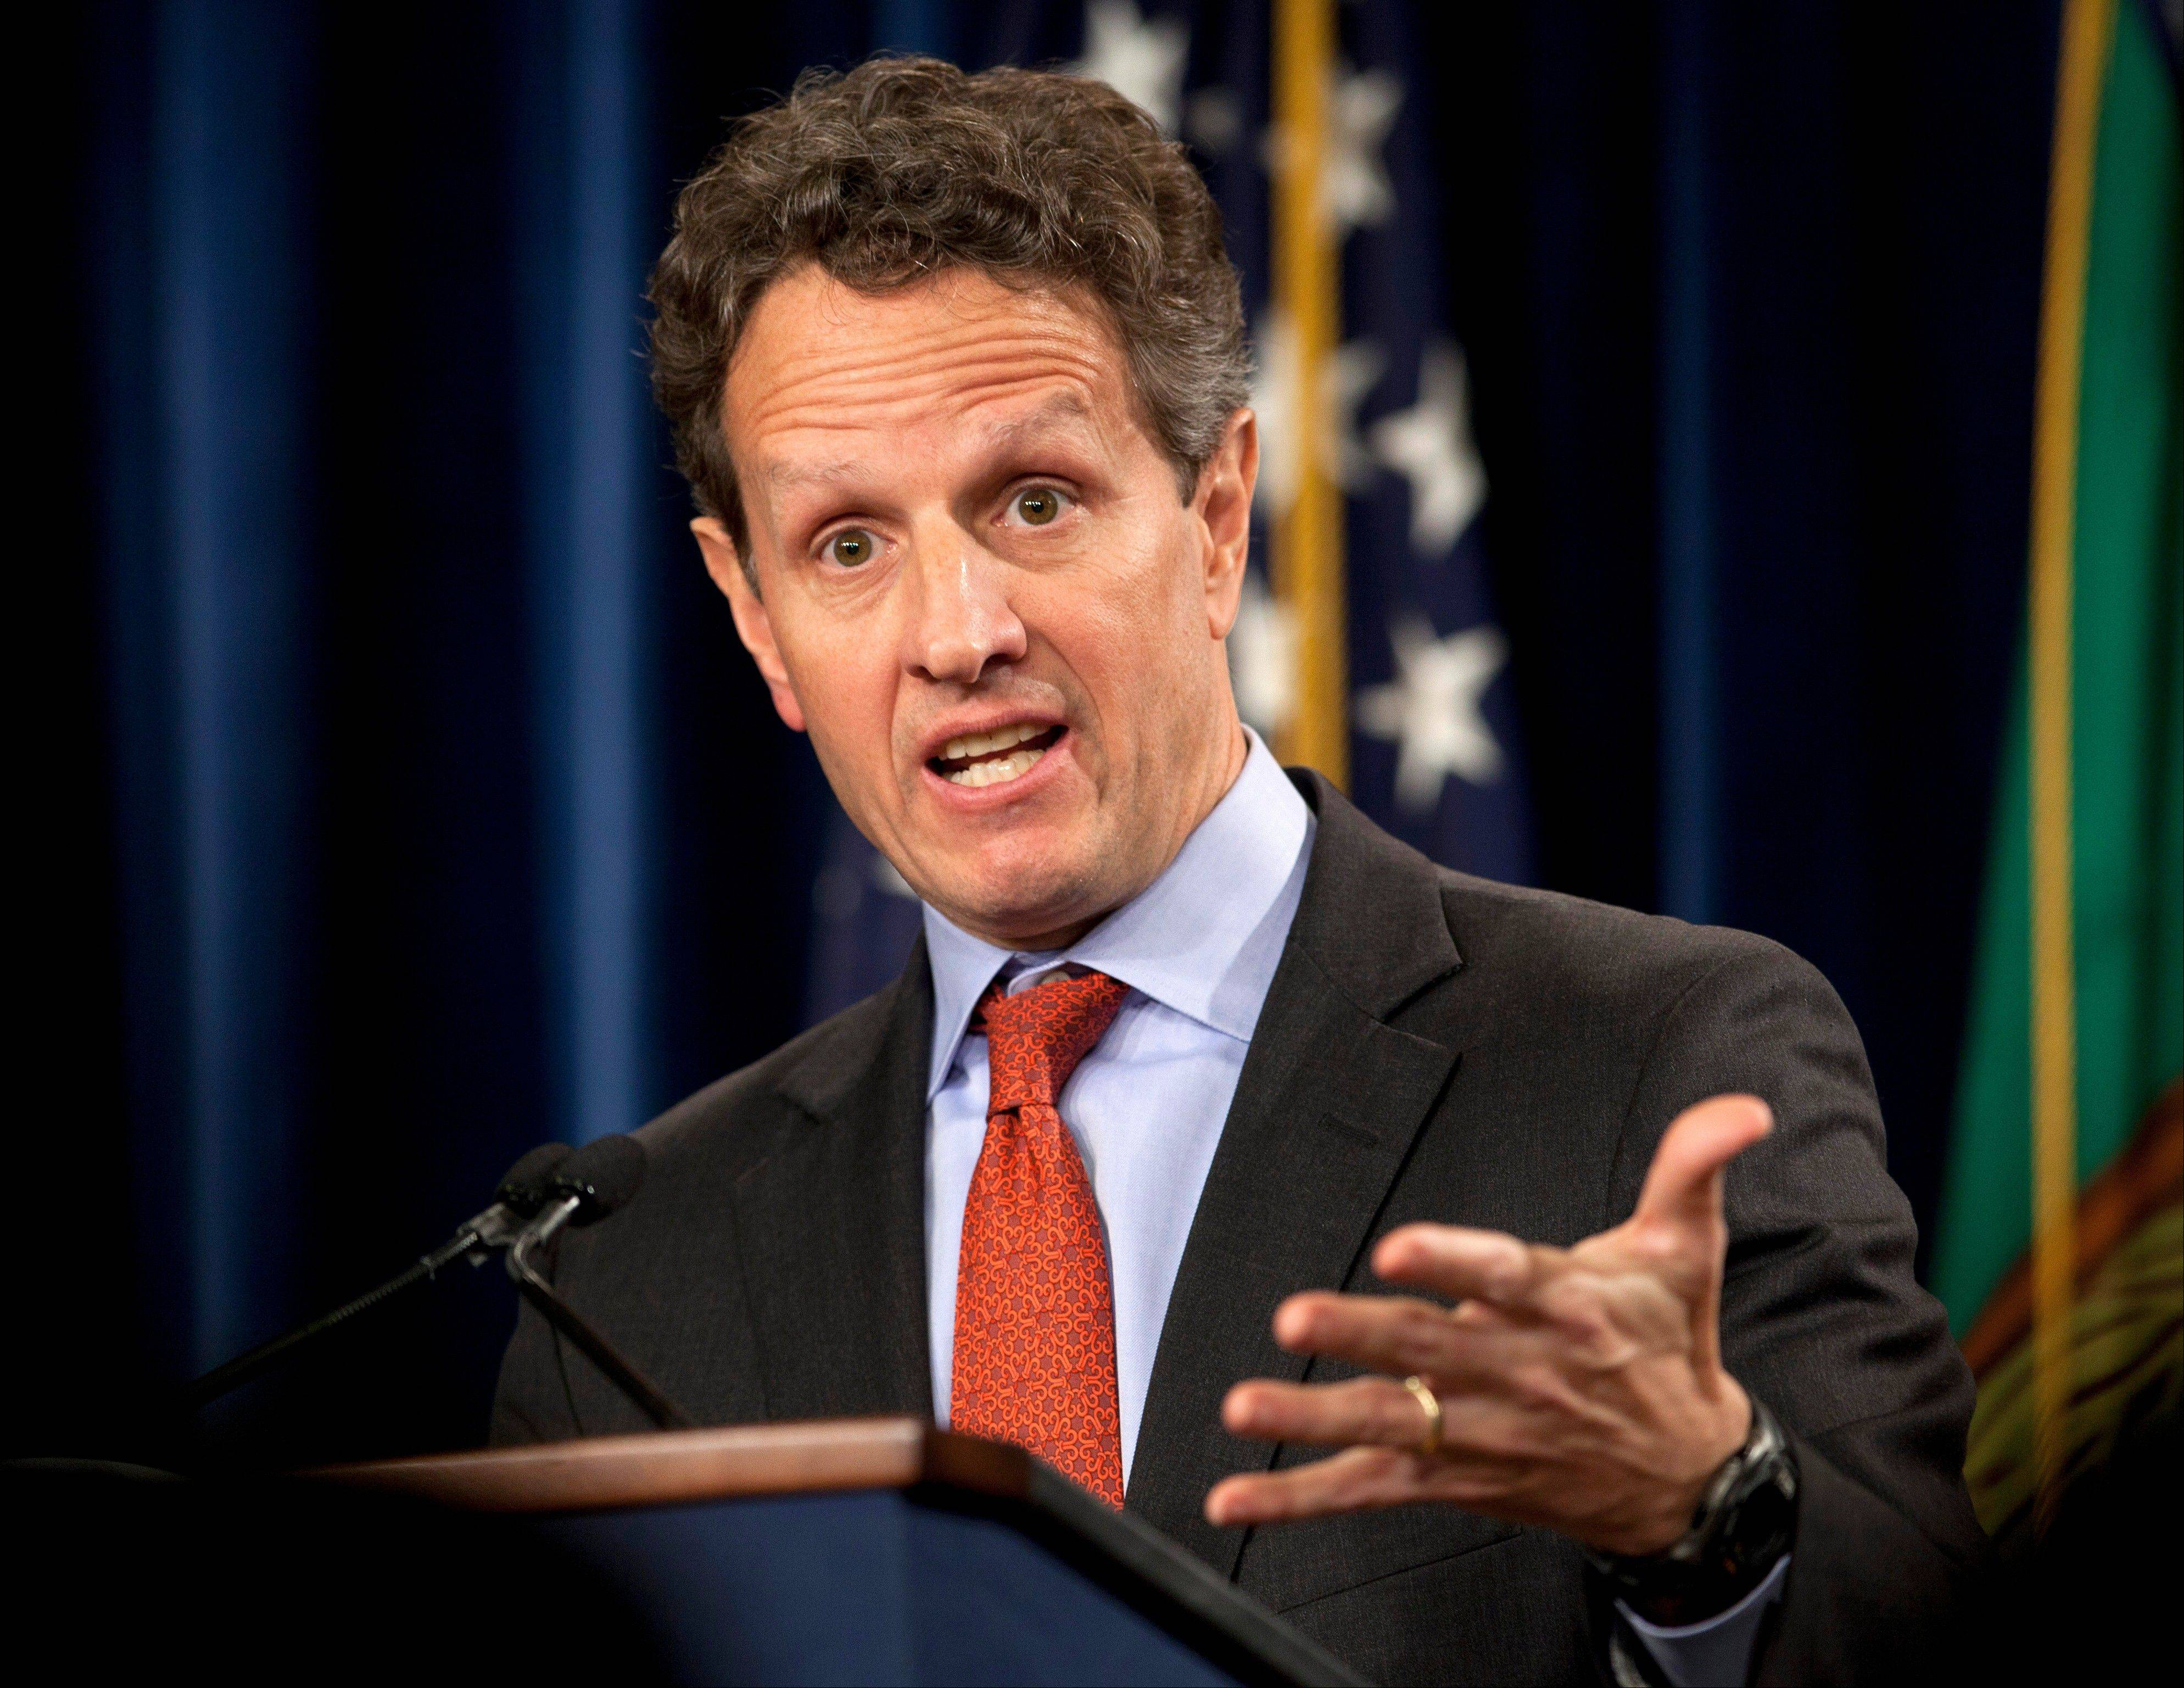 Associated Press/Feb. 2, 2012Then-Treasury Secretary Timothy Geithner during a news conference at the Treasury Department in Washington.